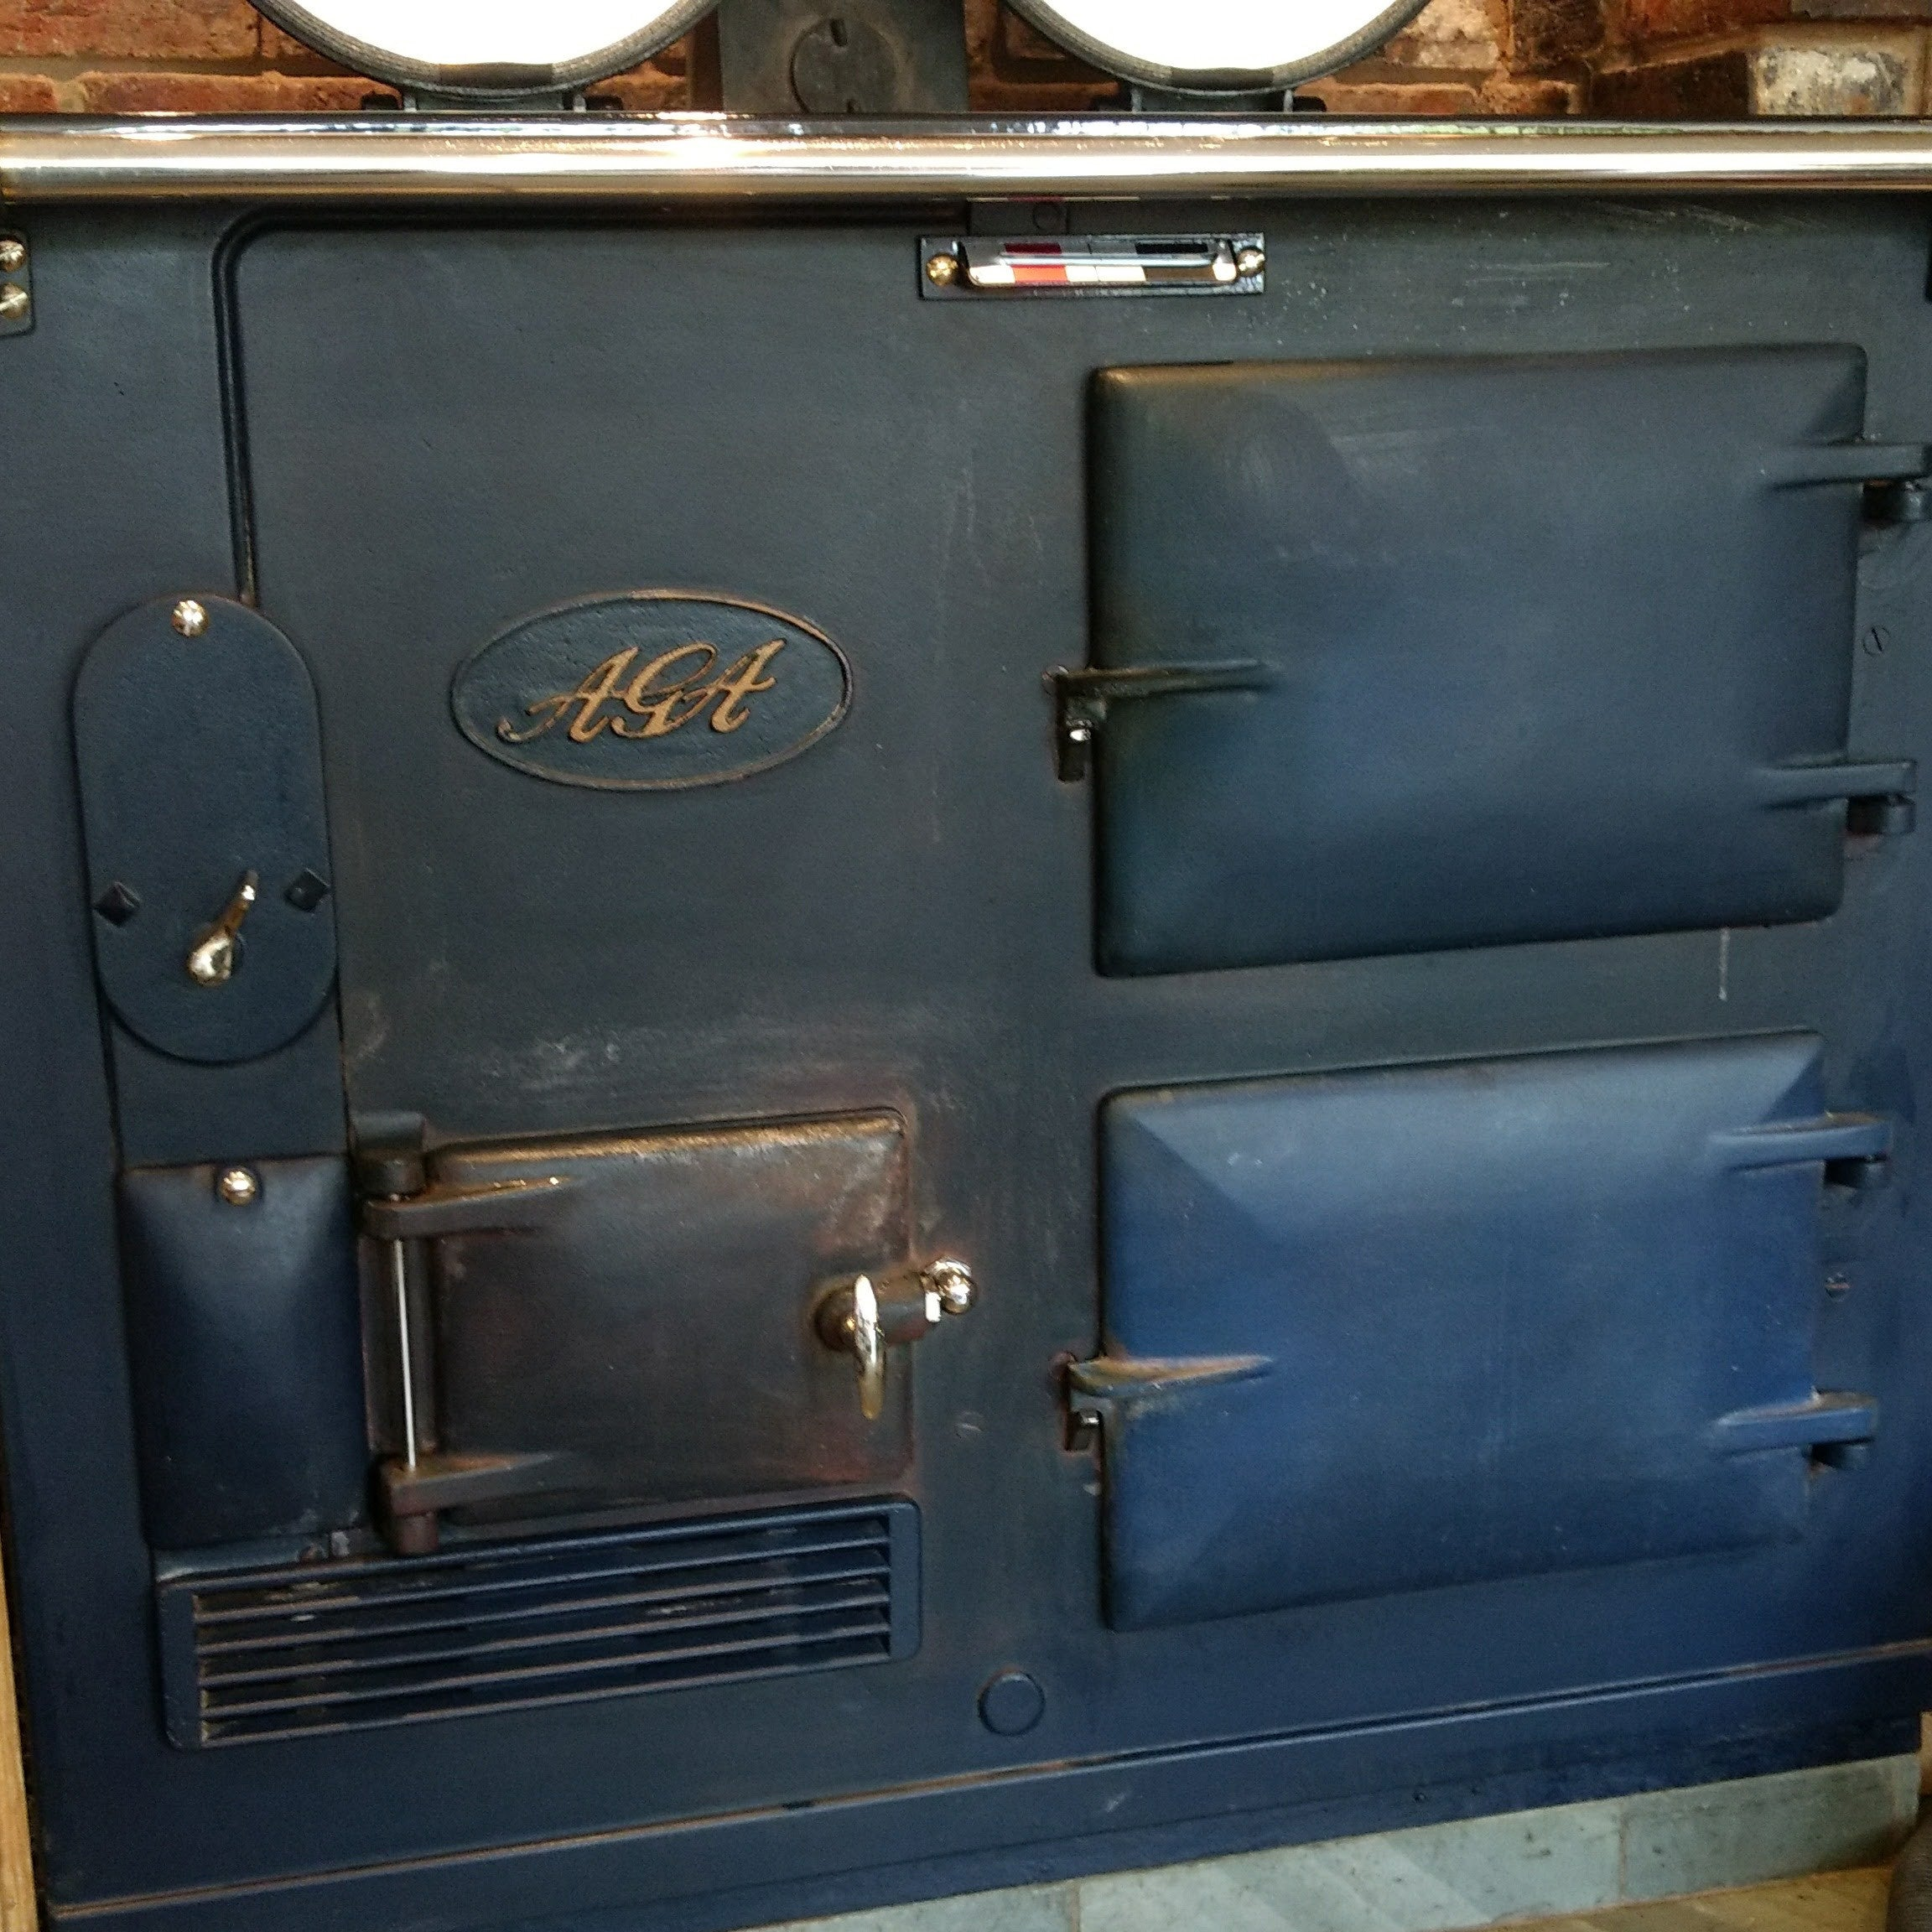 Resurfaced Aga blue front